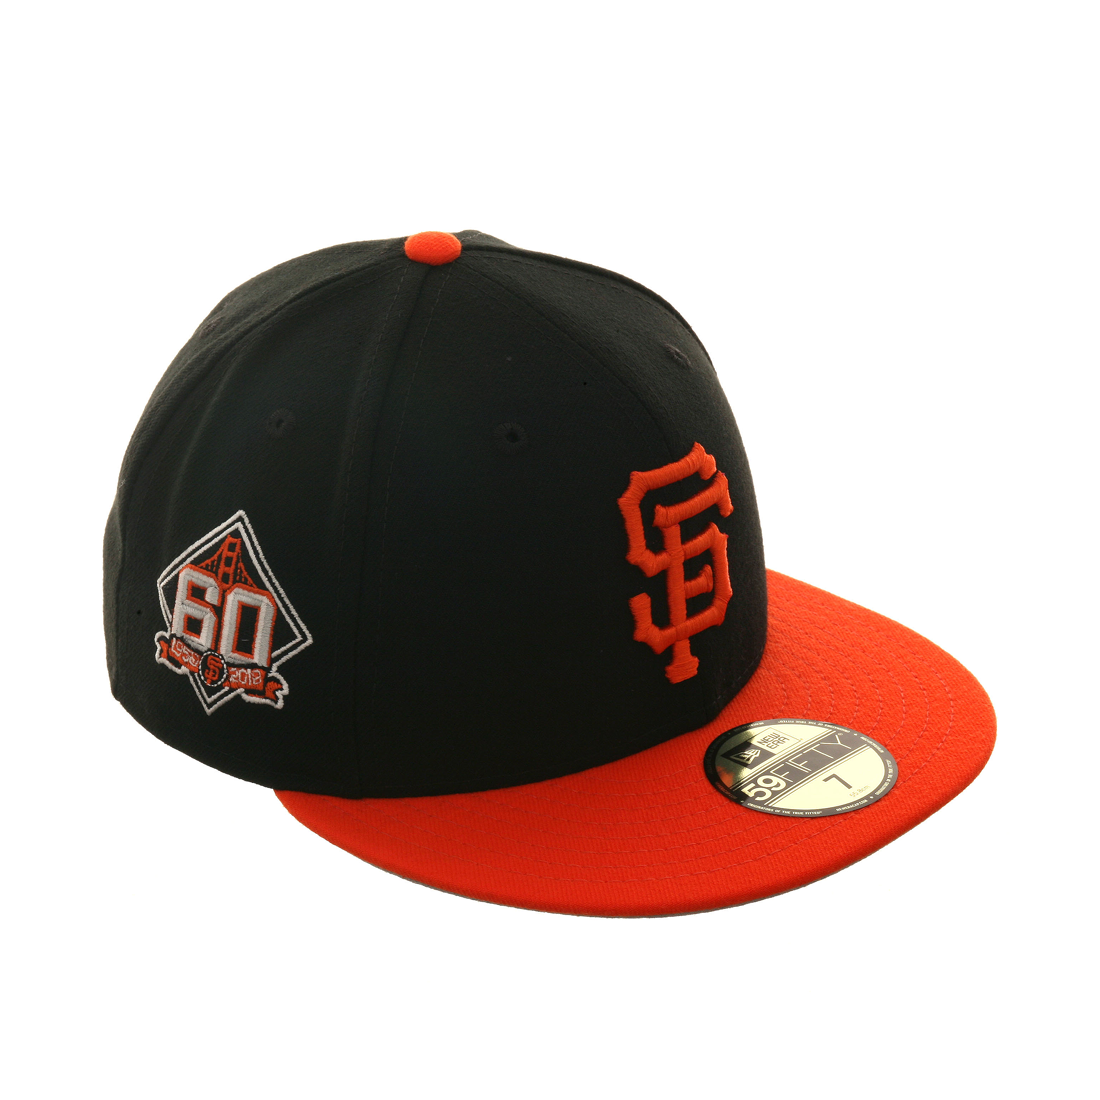 huge selection of 603b7 f4c8c Exclusive New Era 59Fifty San Francisco Giants